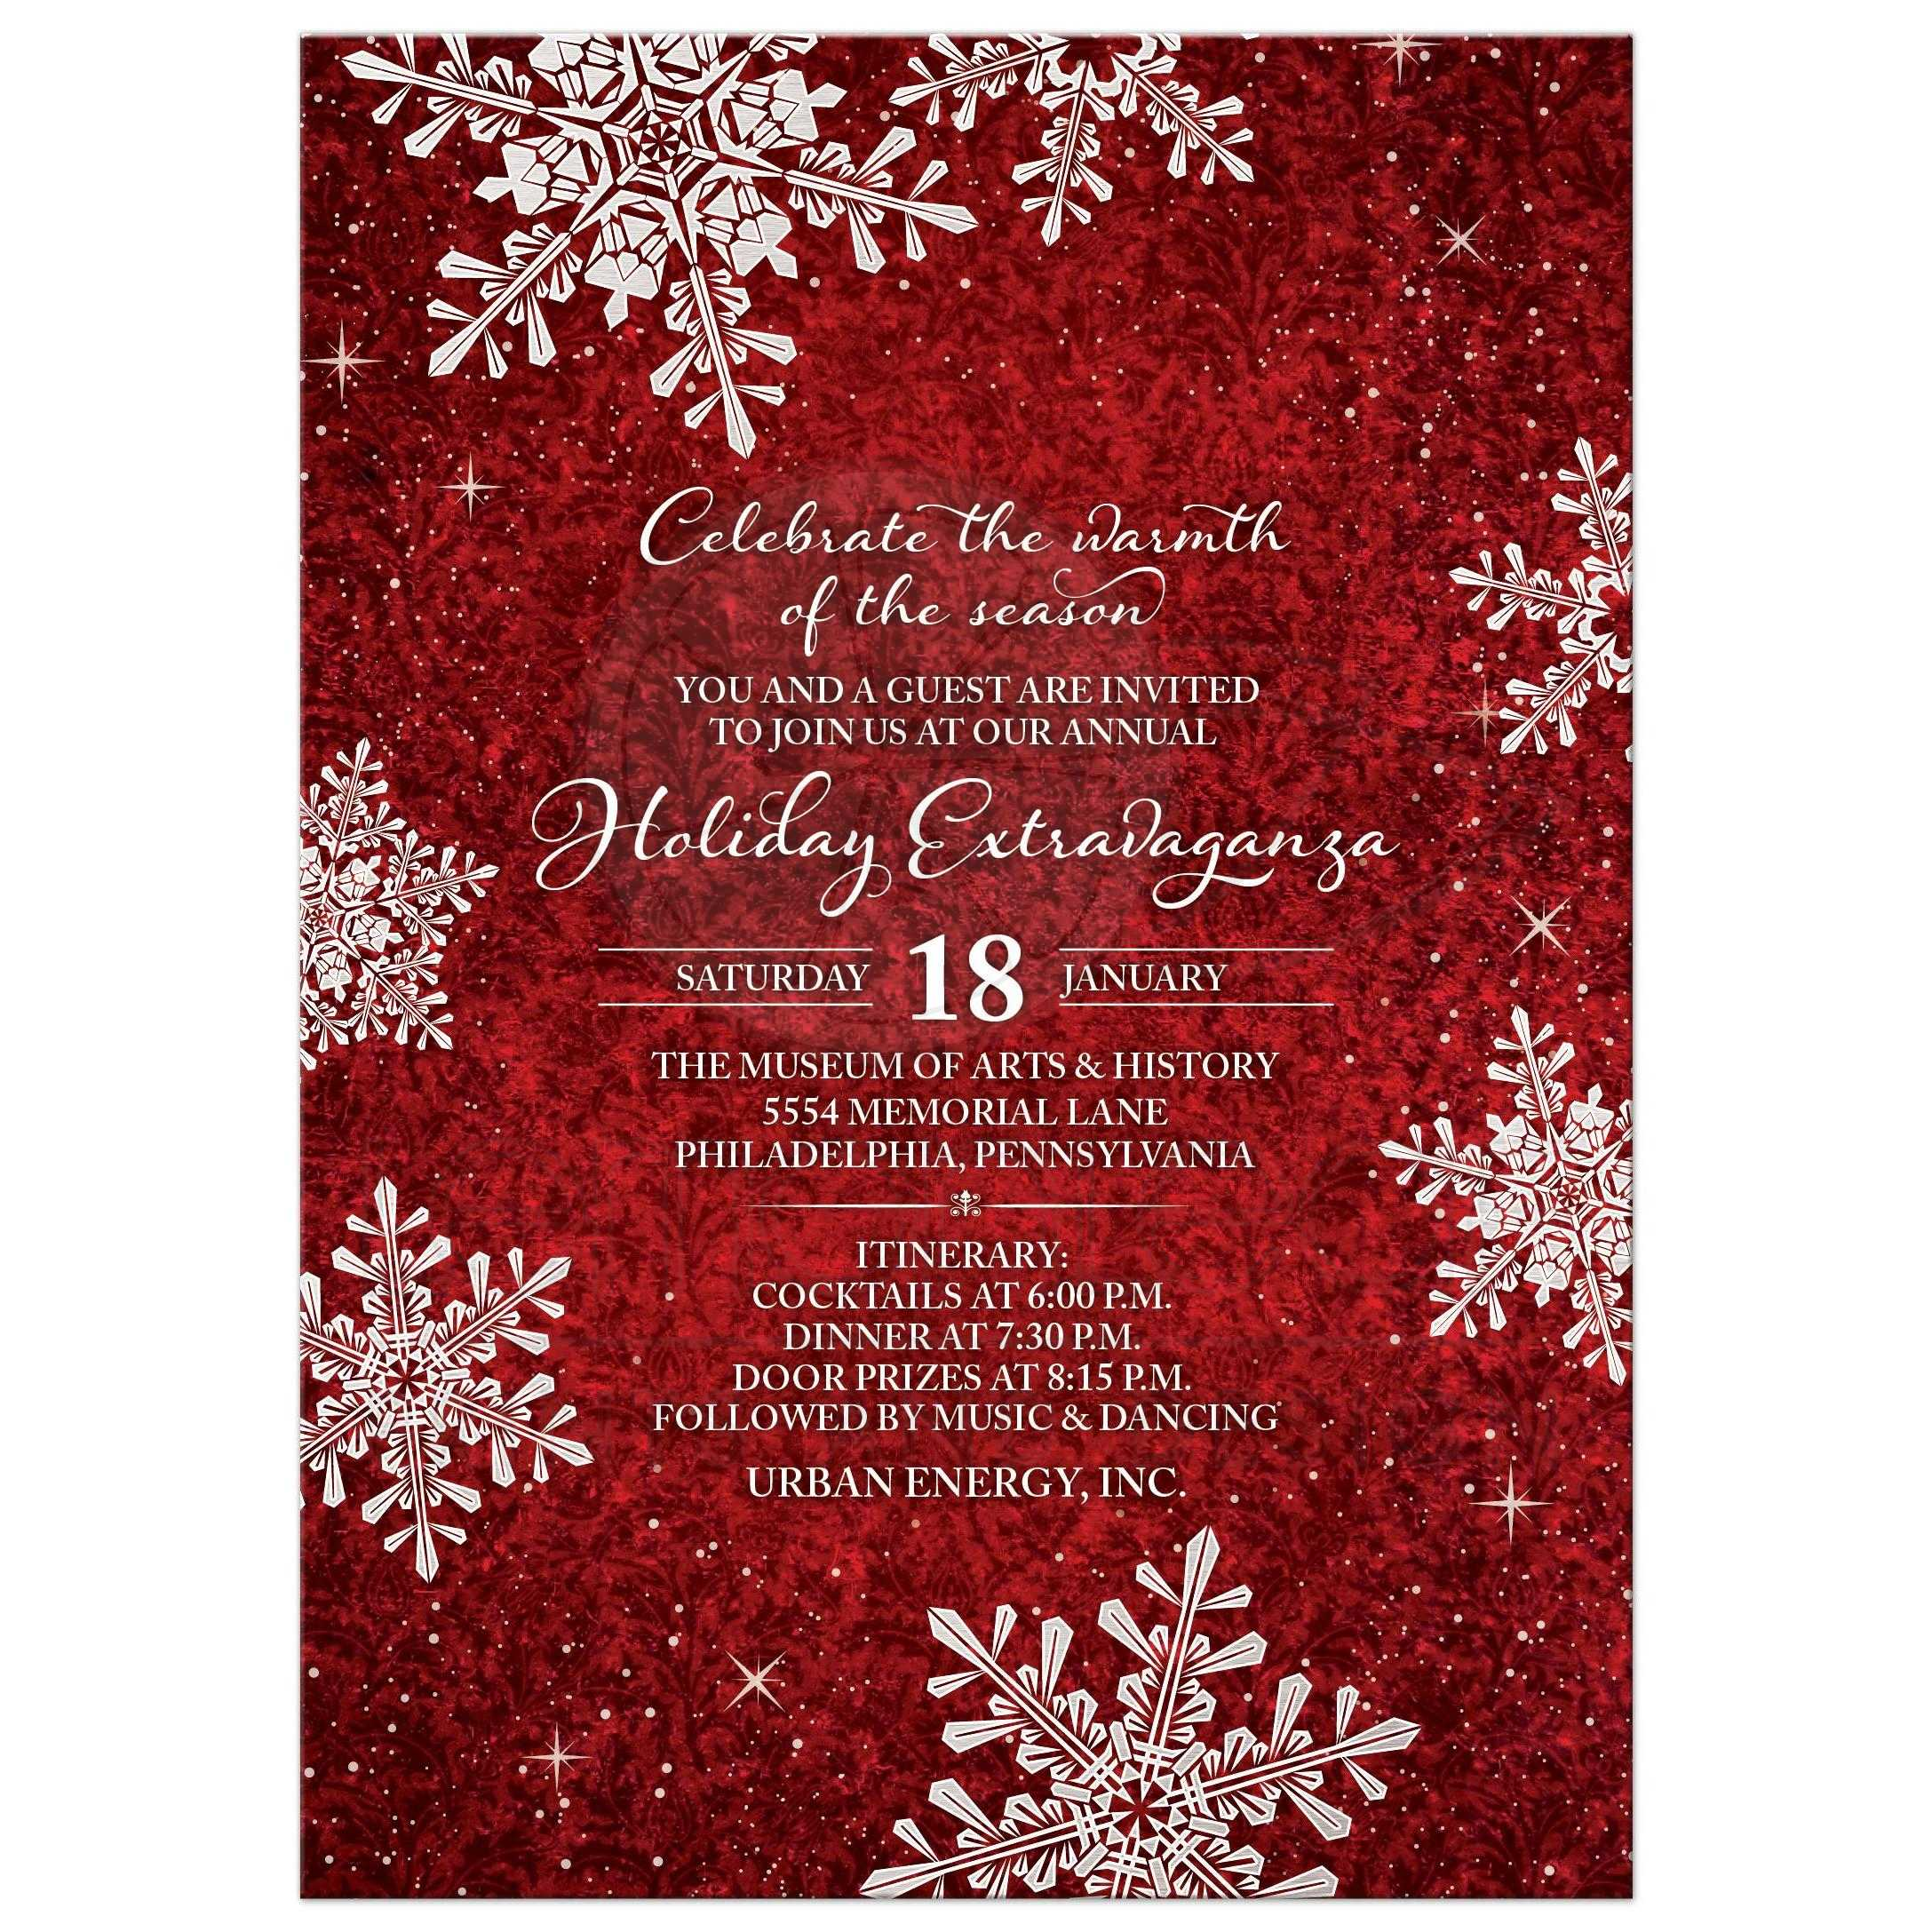 Corporate Or Business Holiday Party Invitation Designs - Corporate party invitation template